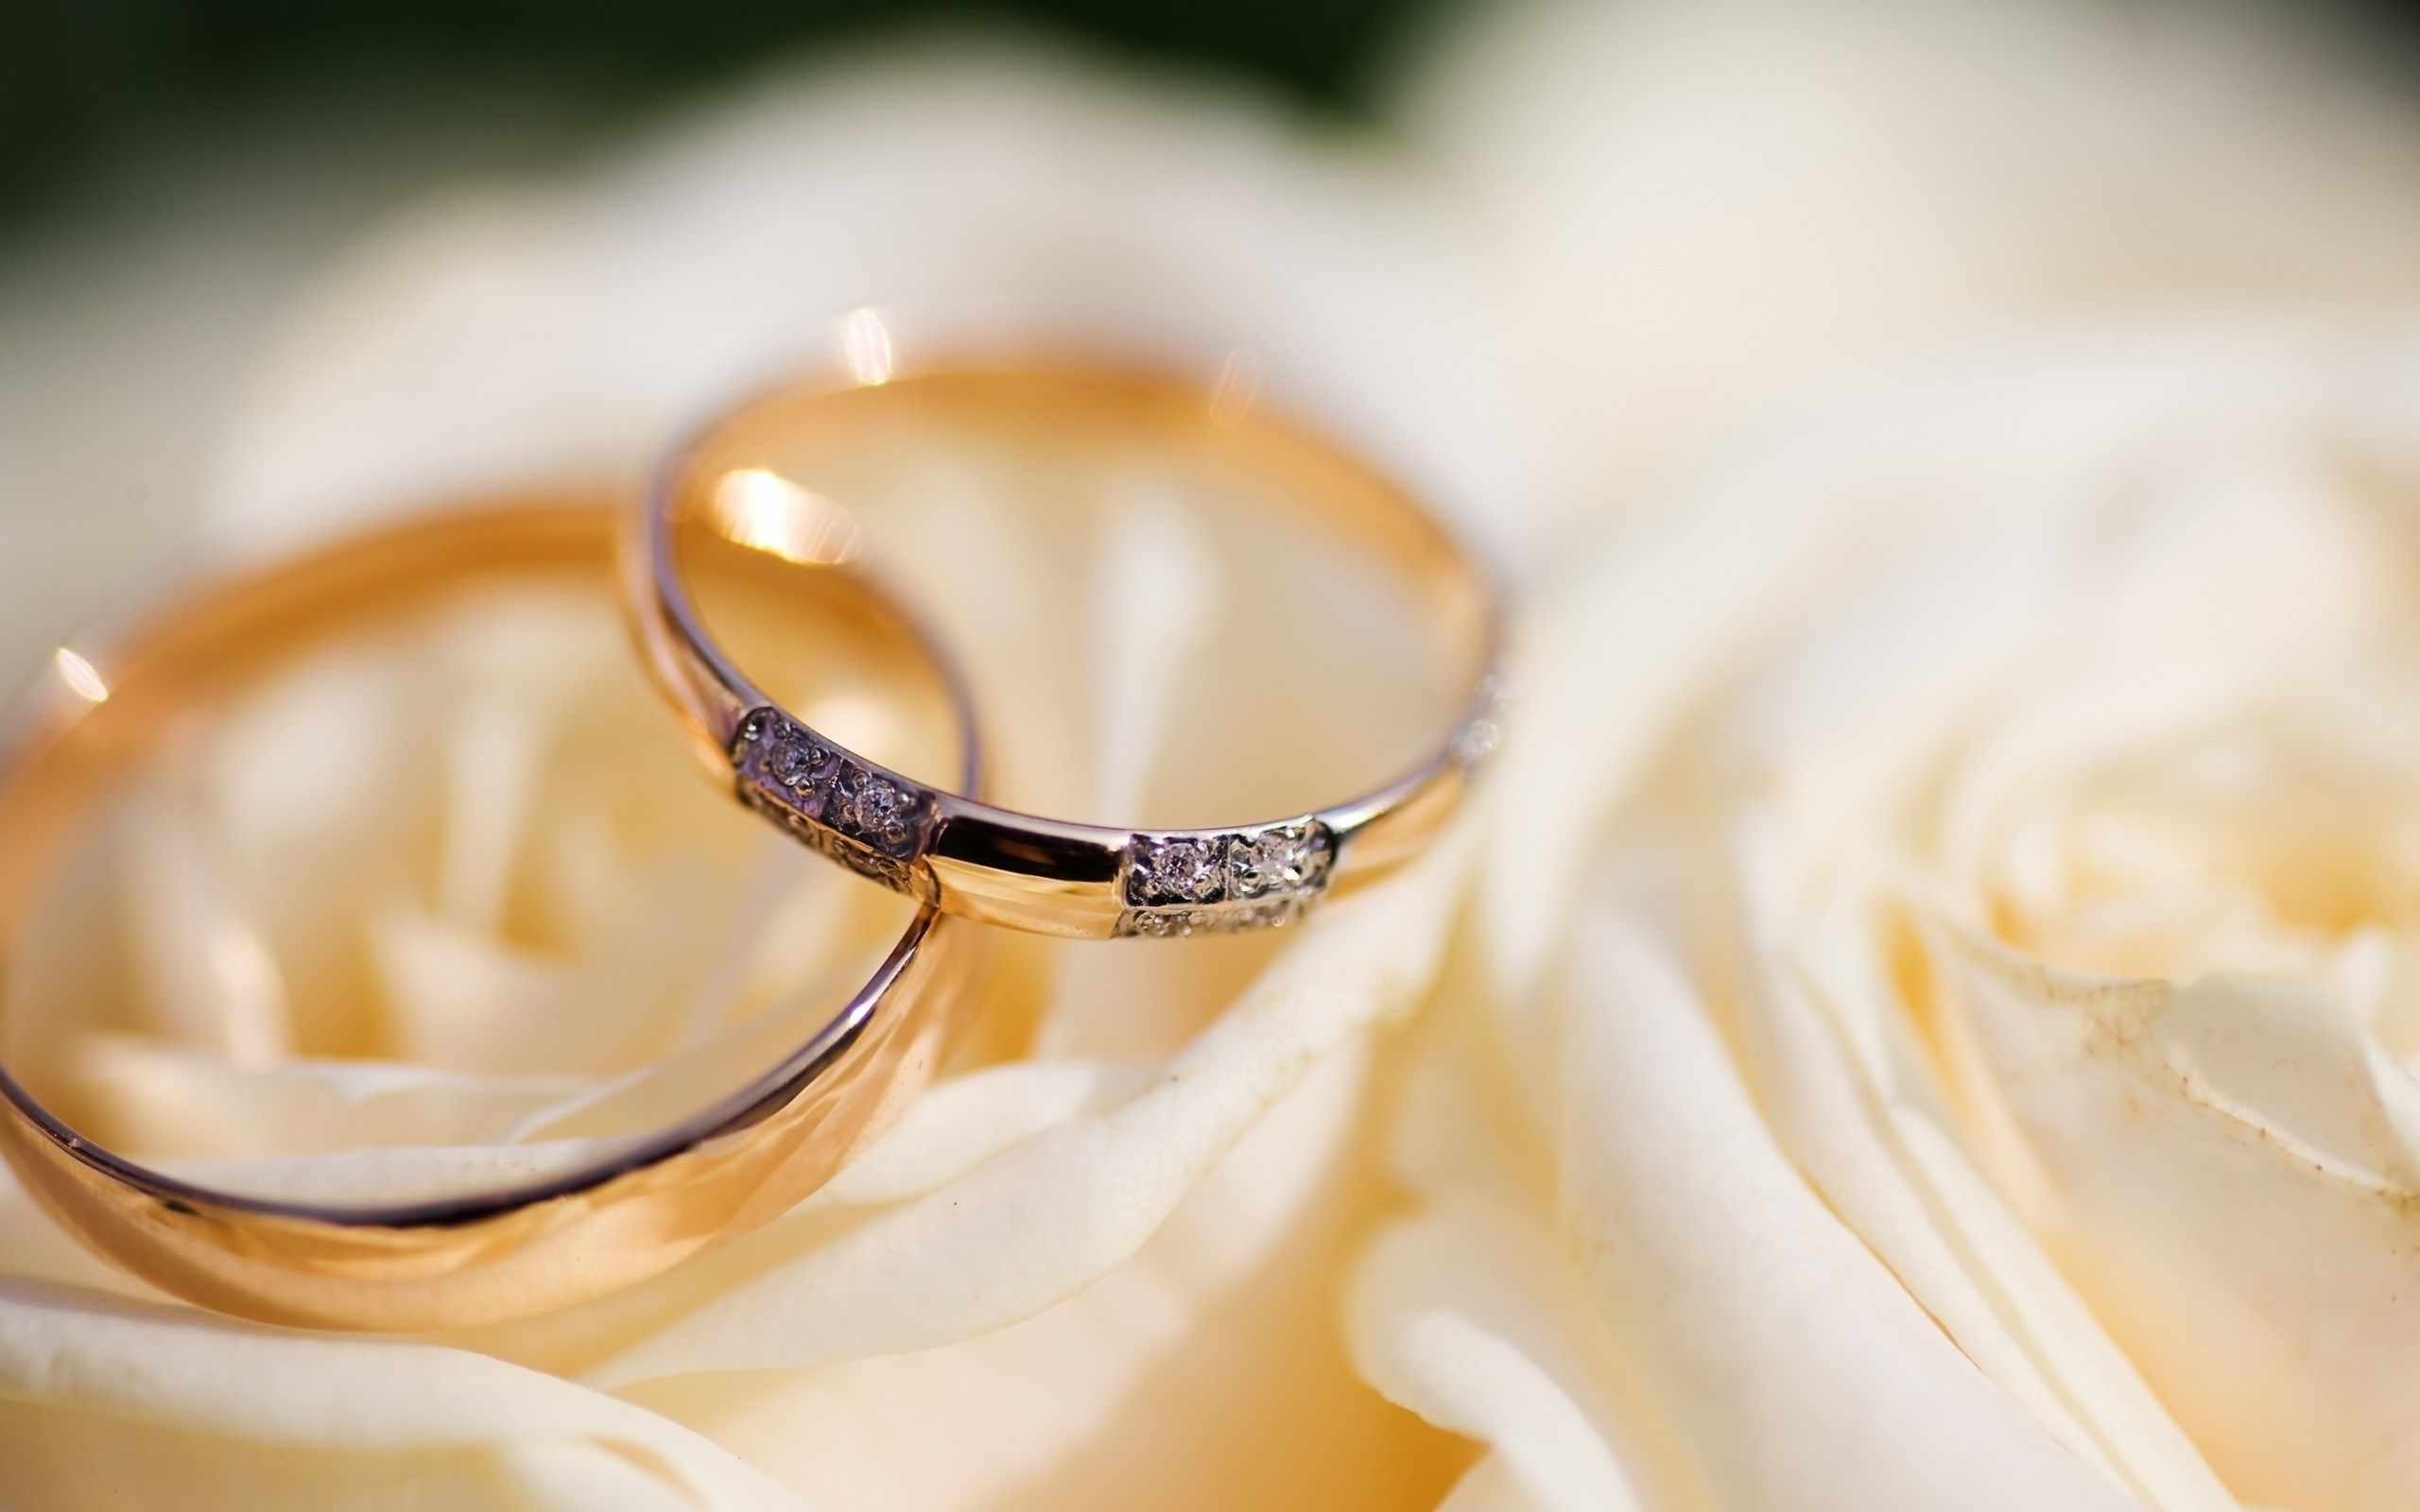 Pin By Silver Weekend On Wedding Photography Wedding Ring